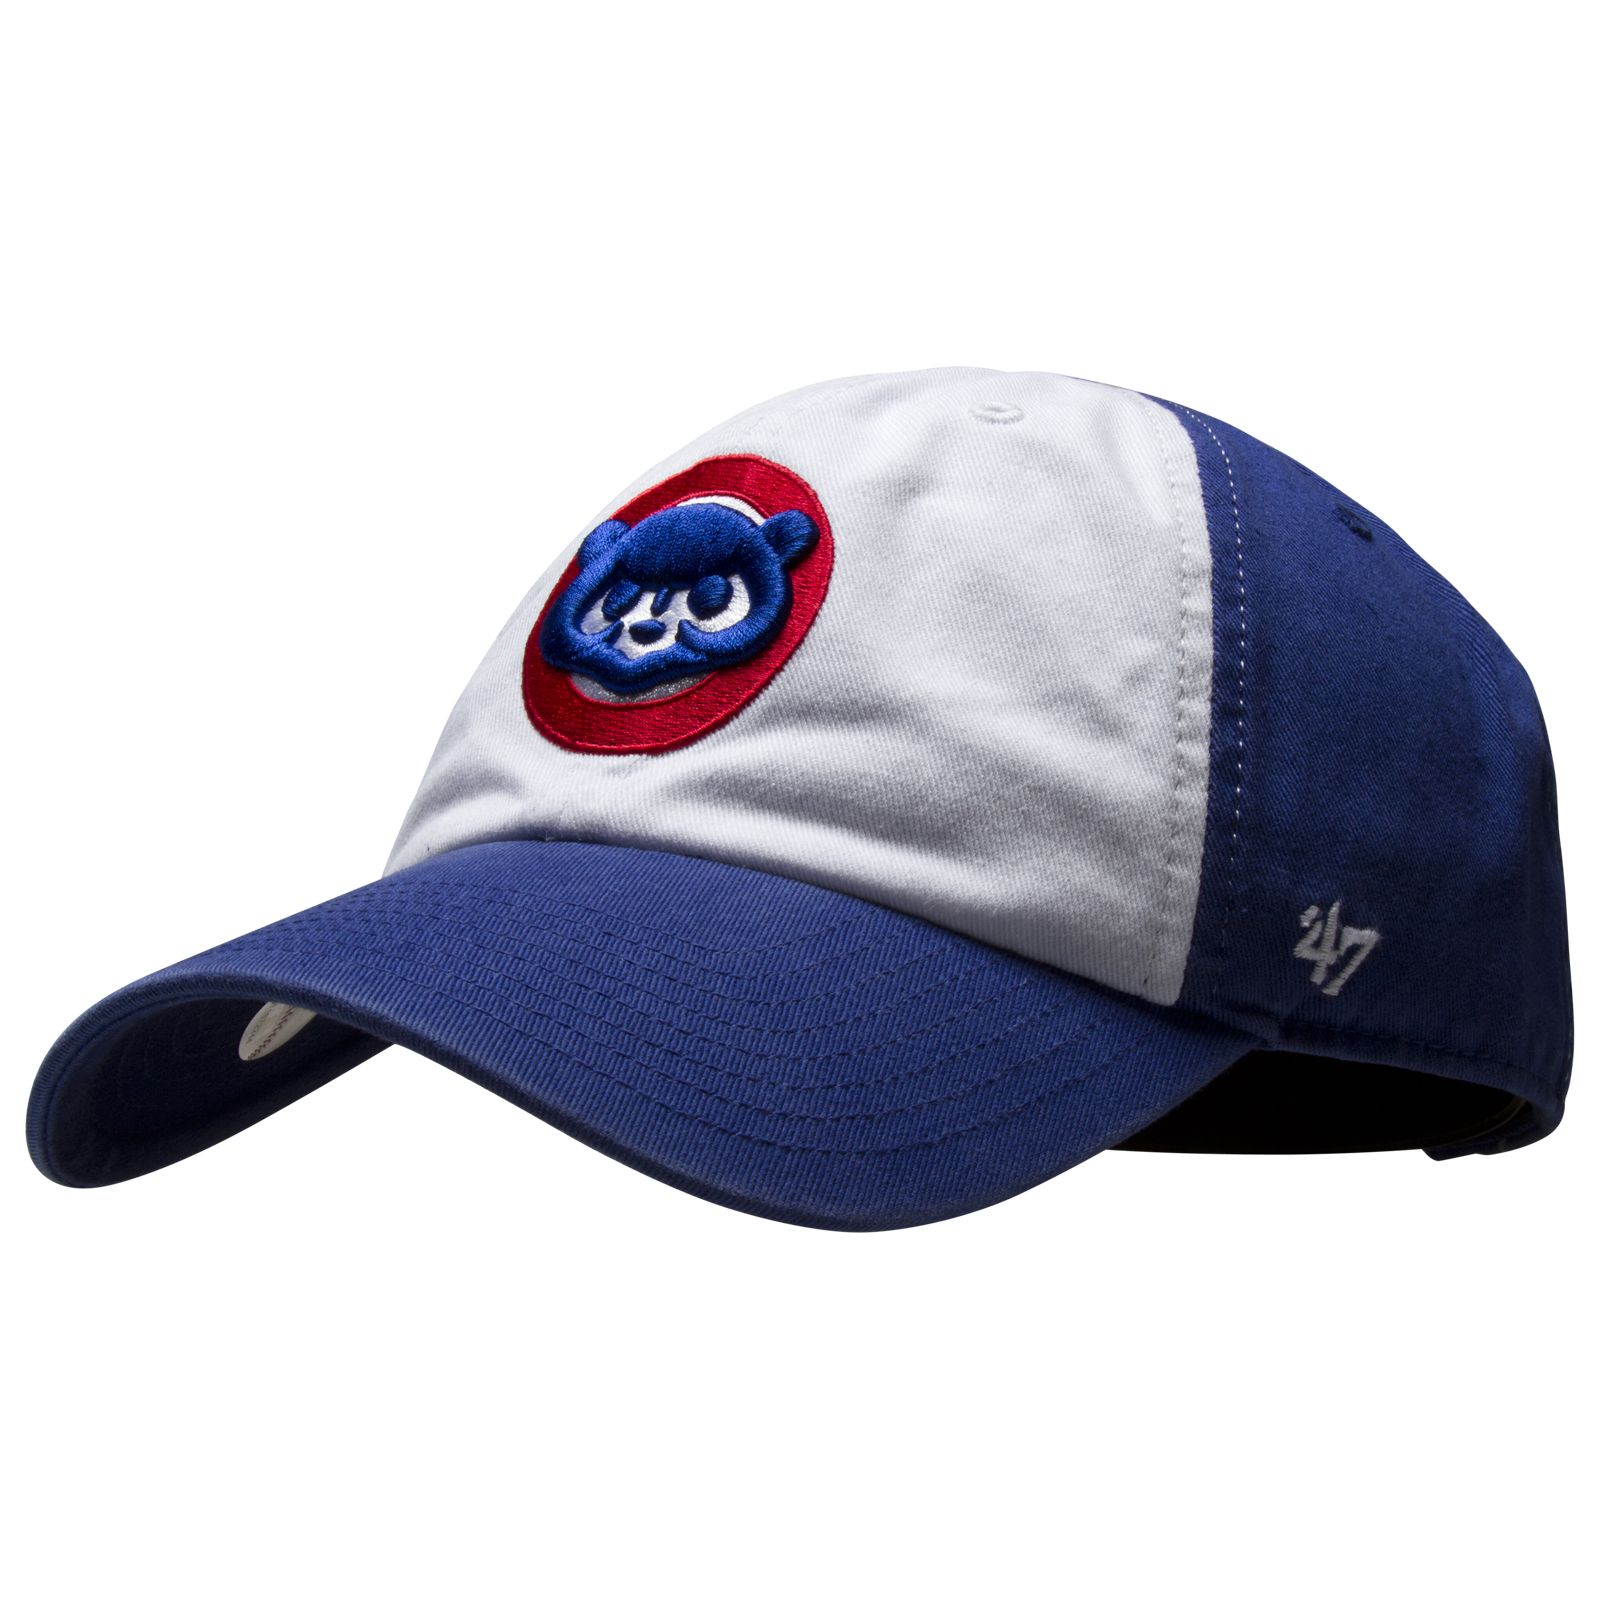 4fec0d5d994 Chicago Cubs White and Royal Freshman 1984 Logo Adjustable Hat by 47 Brand   Chicago  Cubs  ChicagoCubs